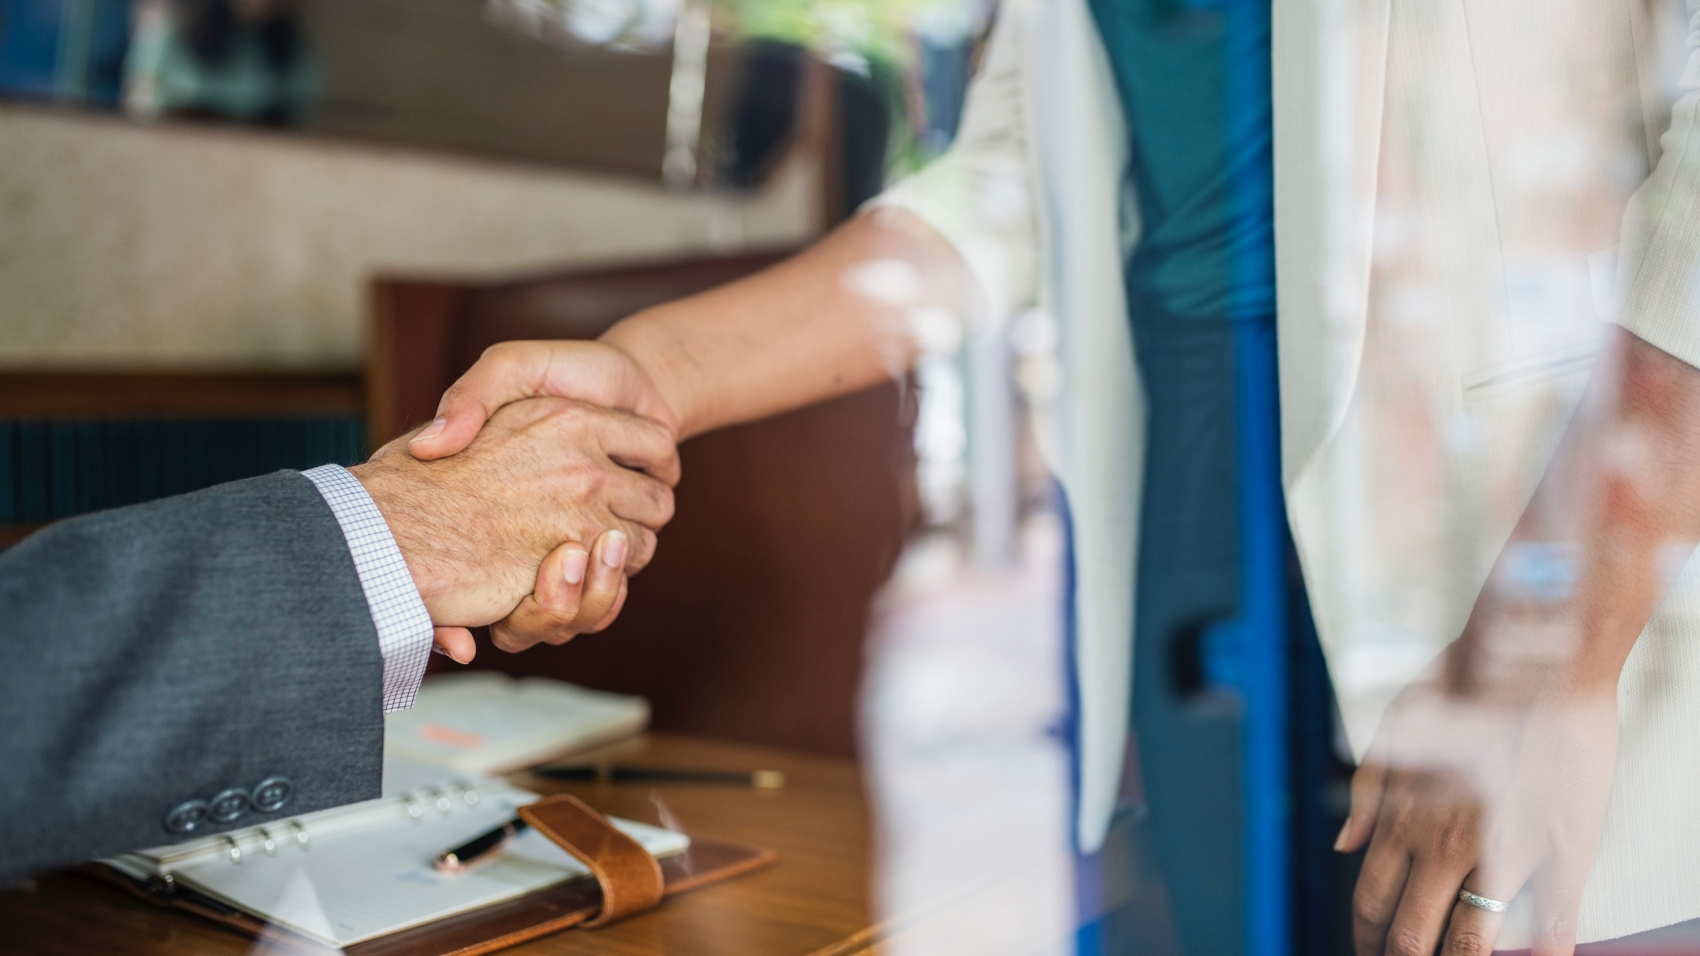 shake hands as a sign of business etiquette